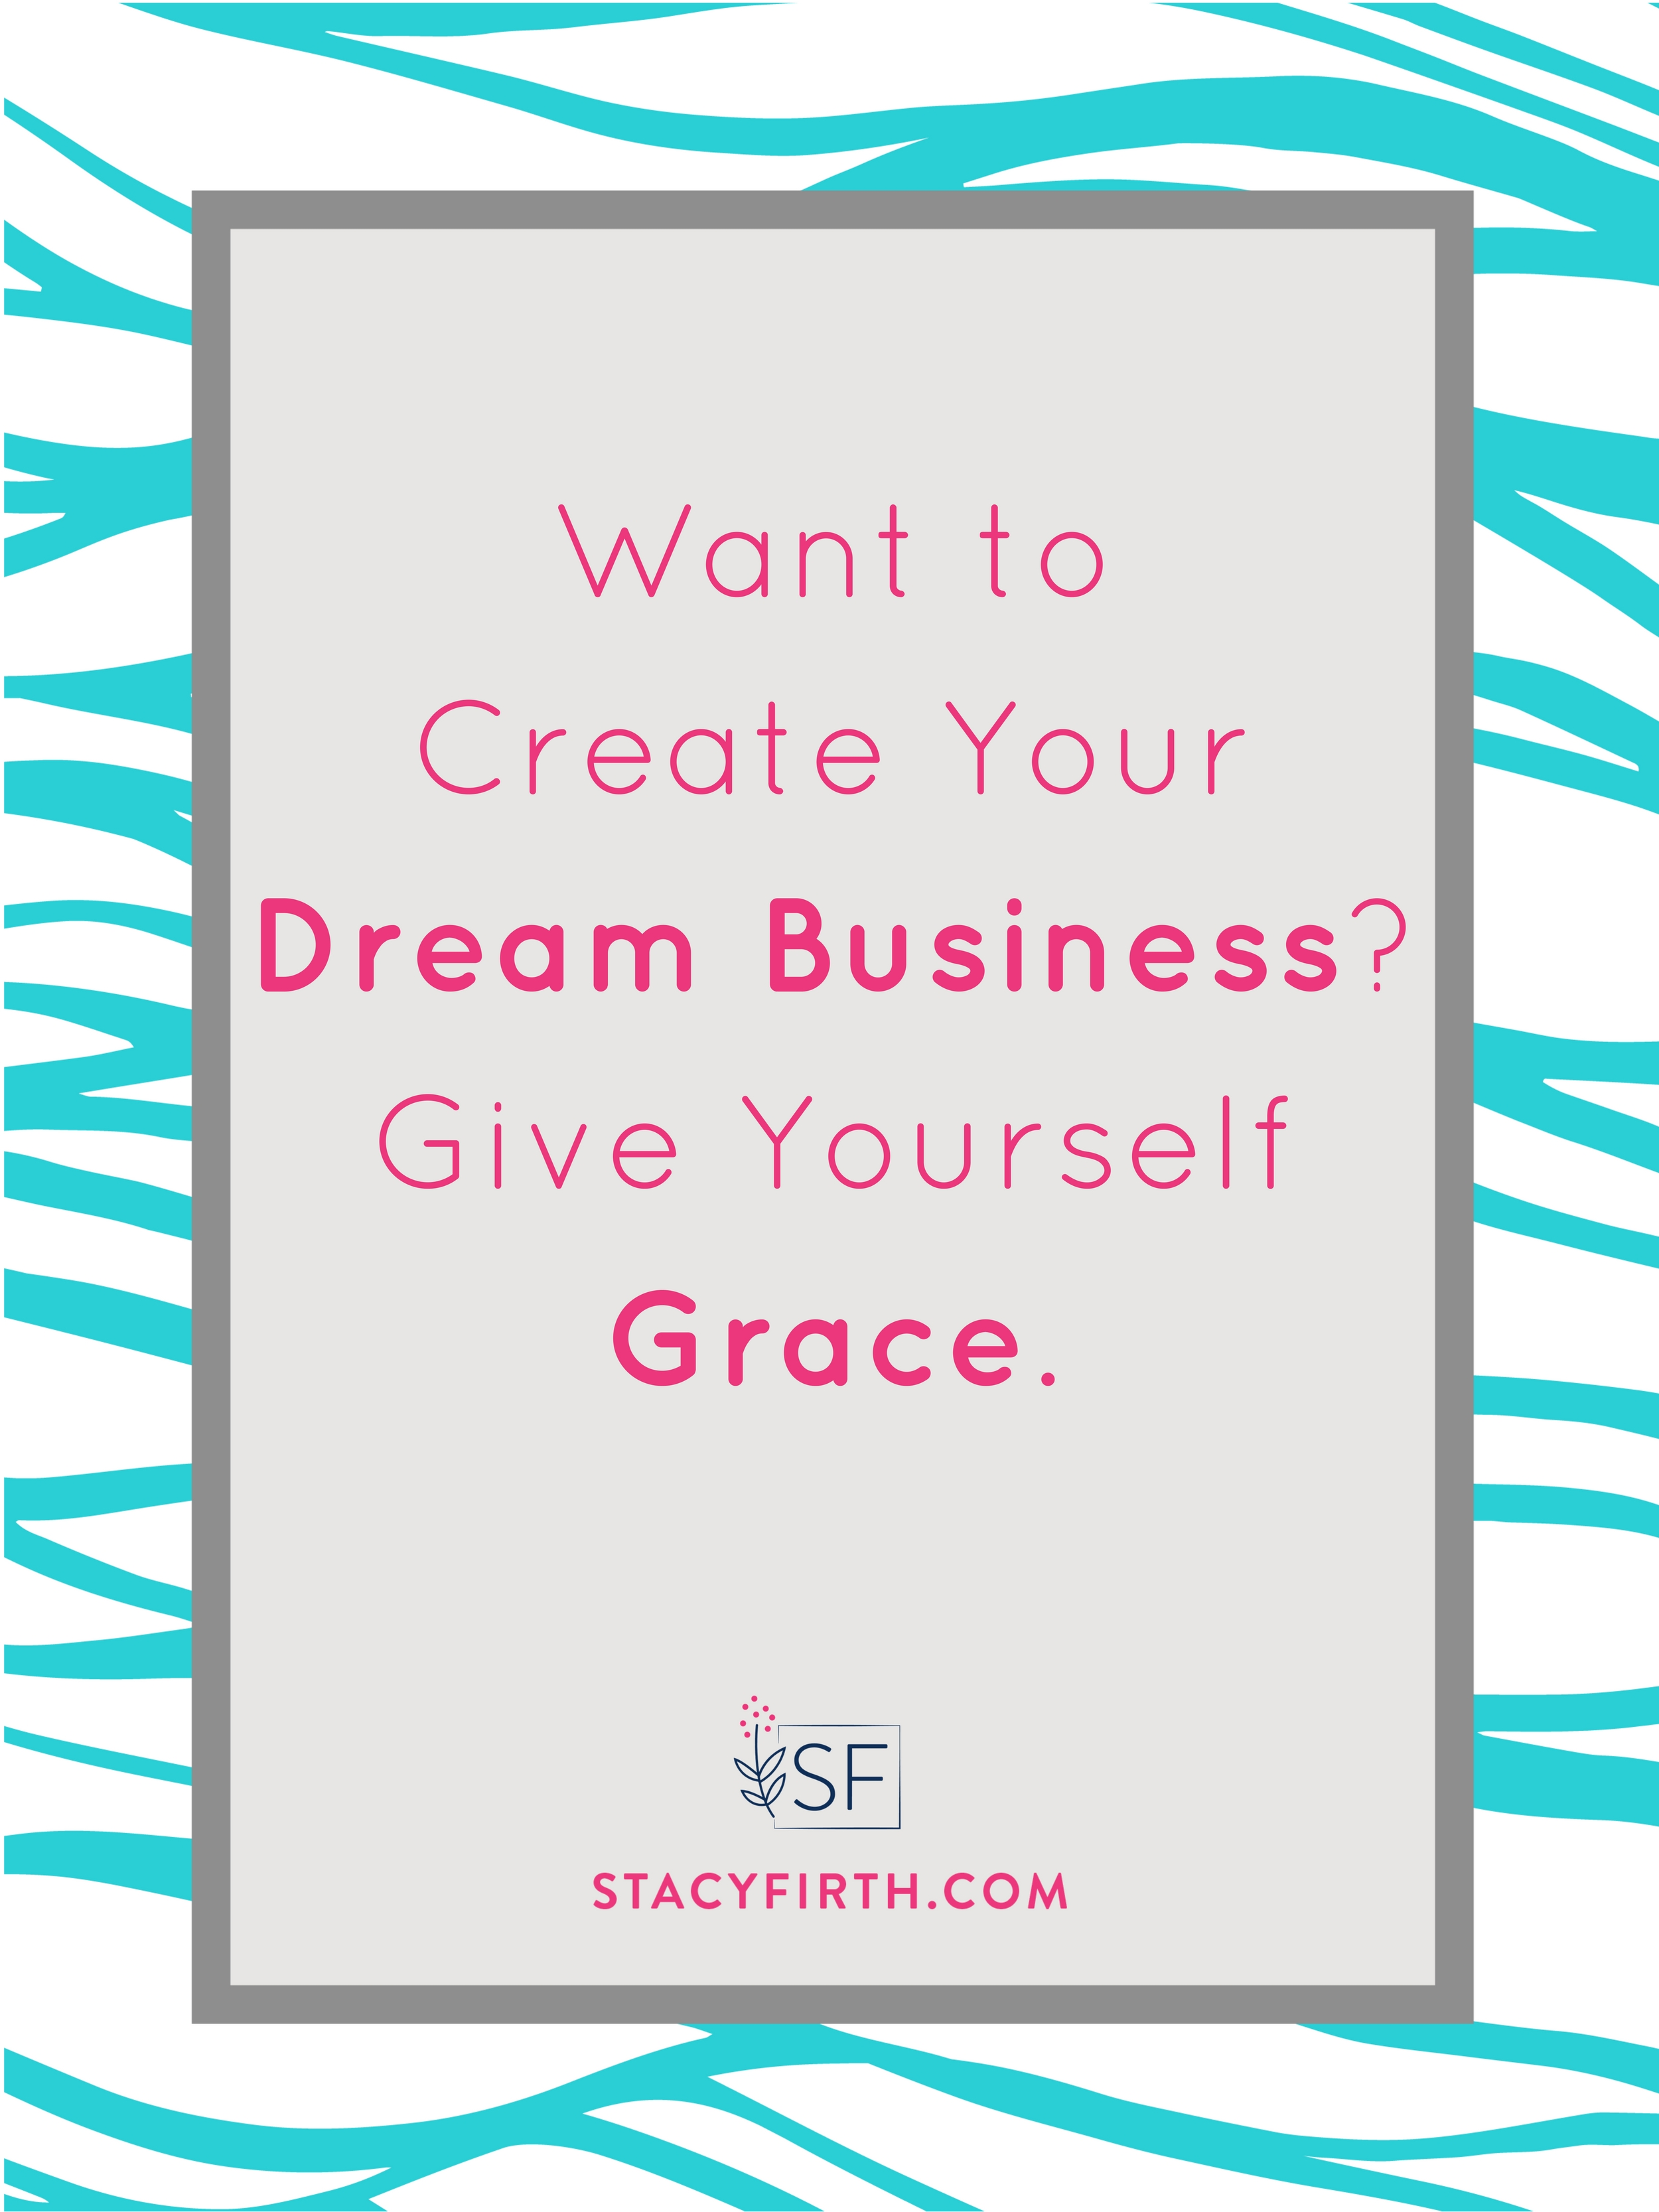 As moms and business owners, we are striving, always.We need to stop being so hard on ourselves. We need to give ourselves grace. Here's how to create a space for grace in our lives each day?